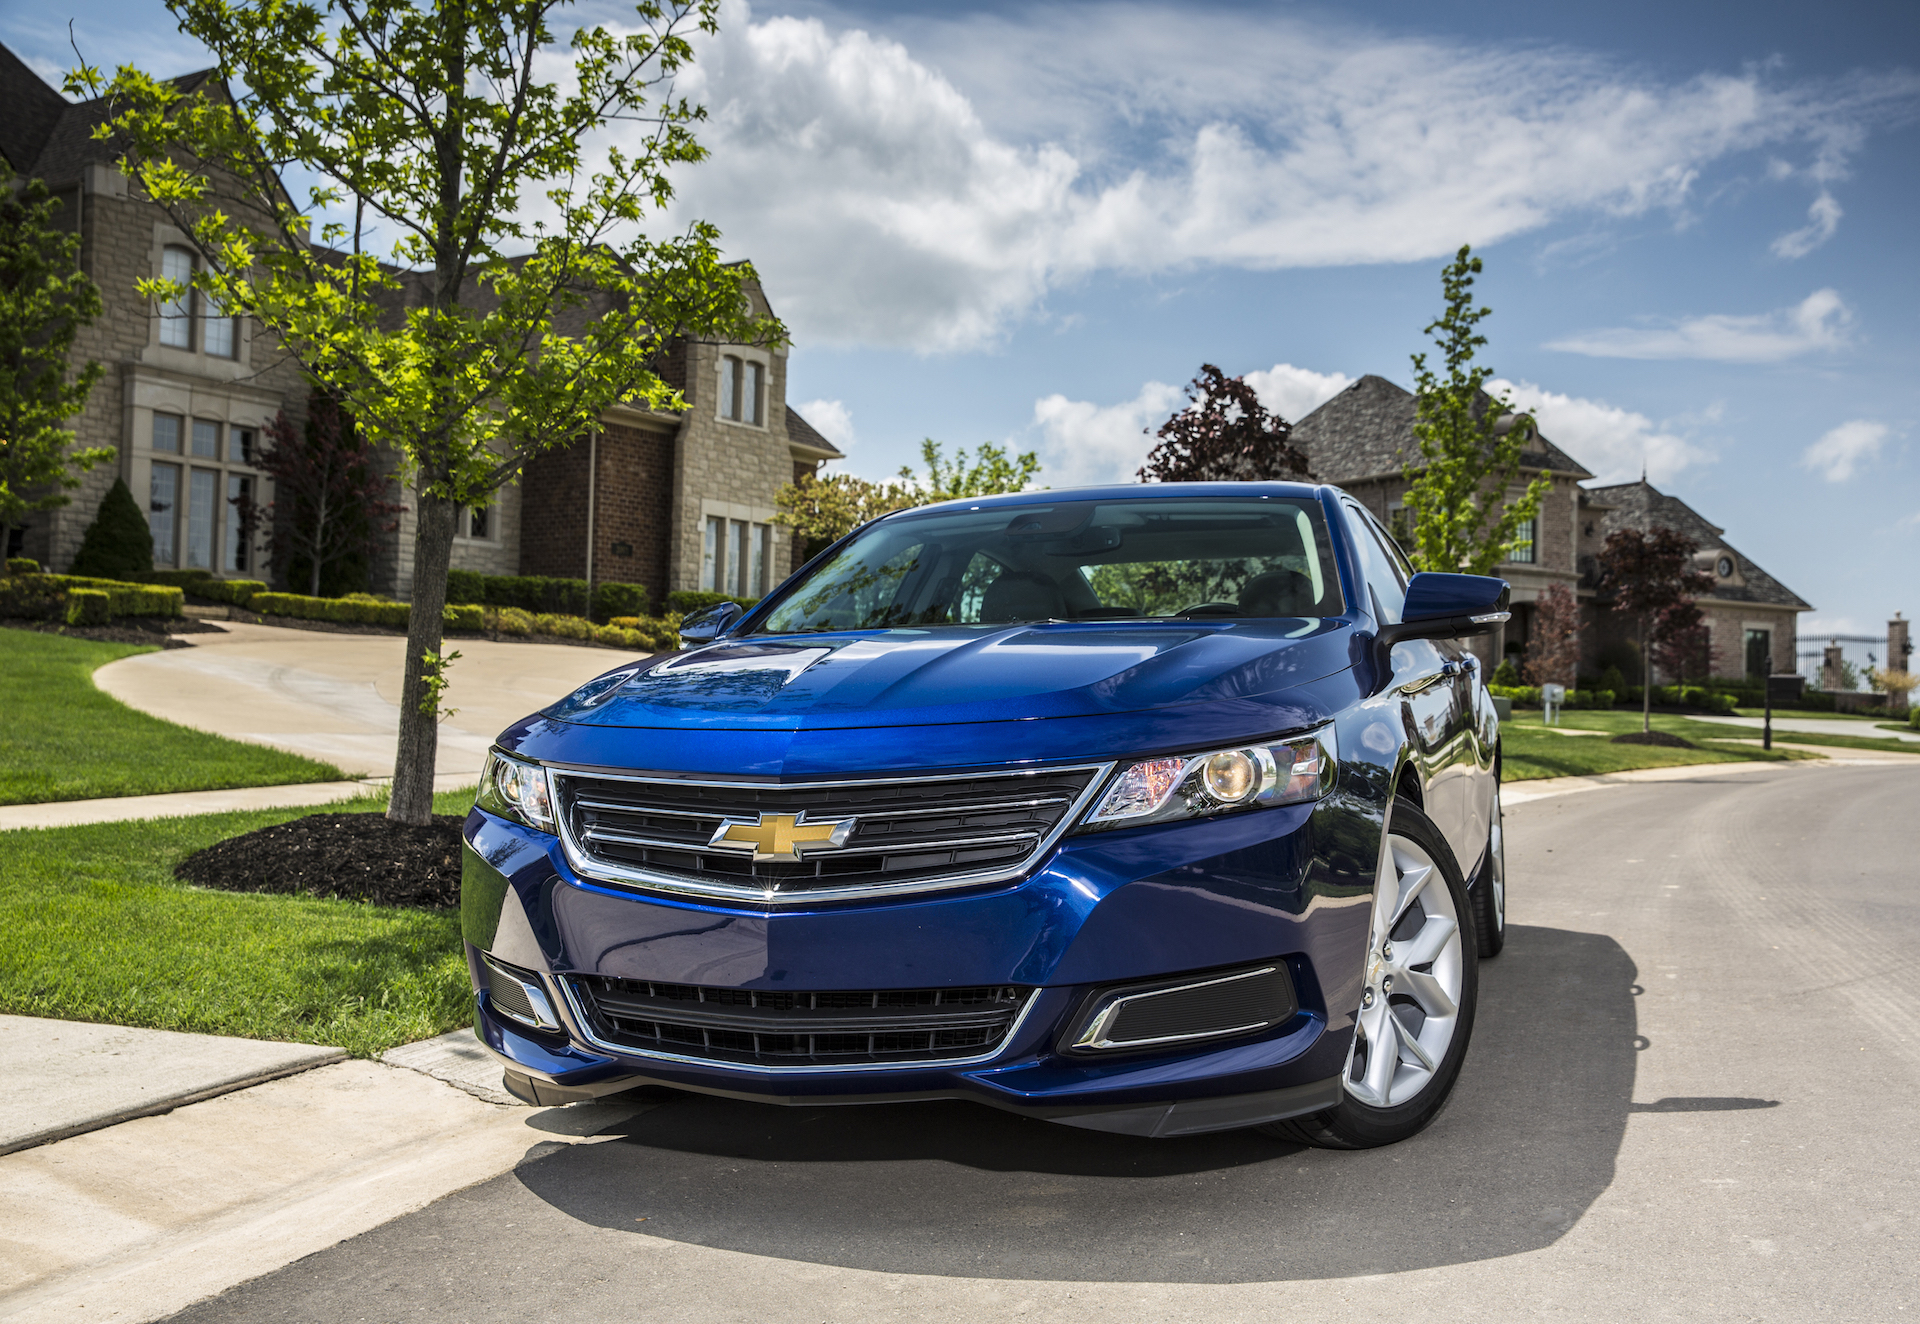 2016 Chevrolet Impala (Photo 7 of 11)